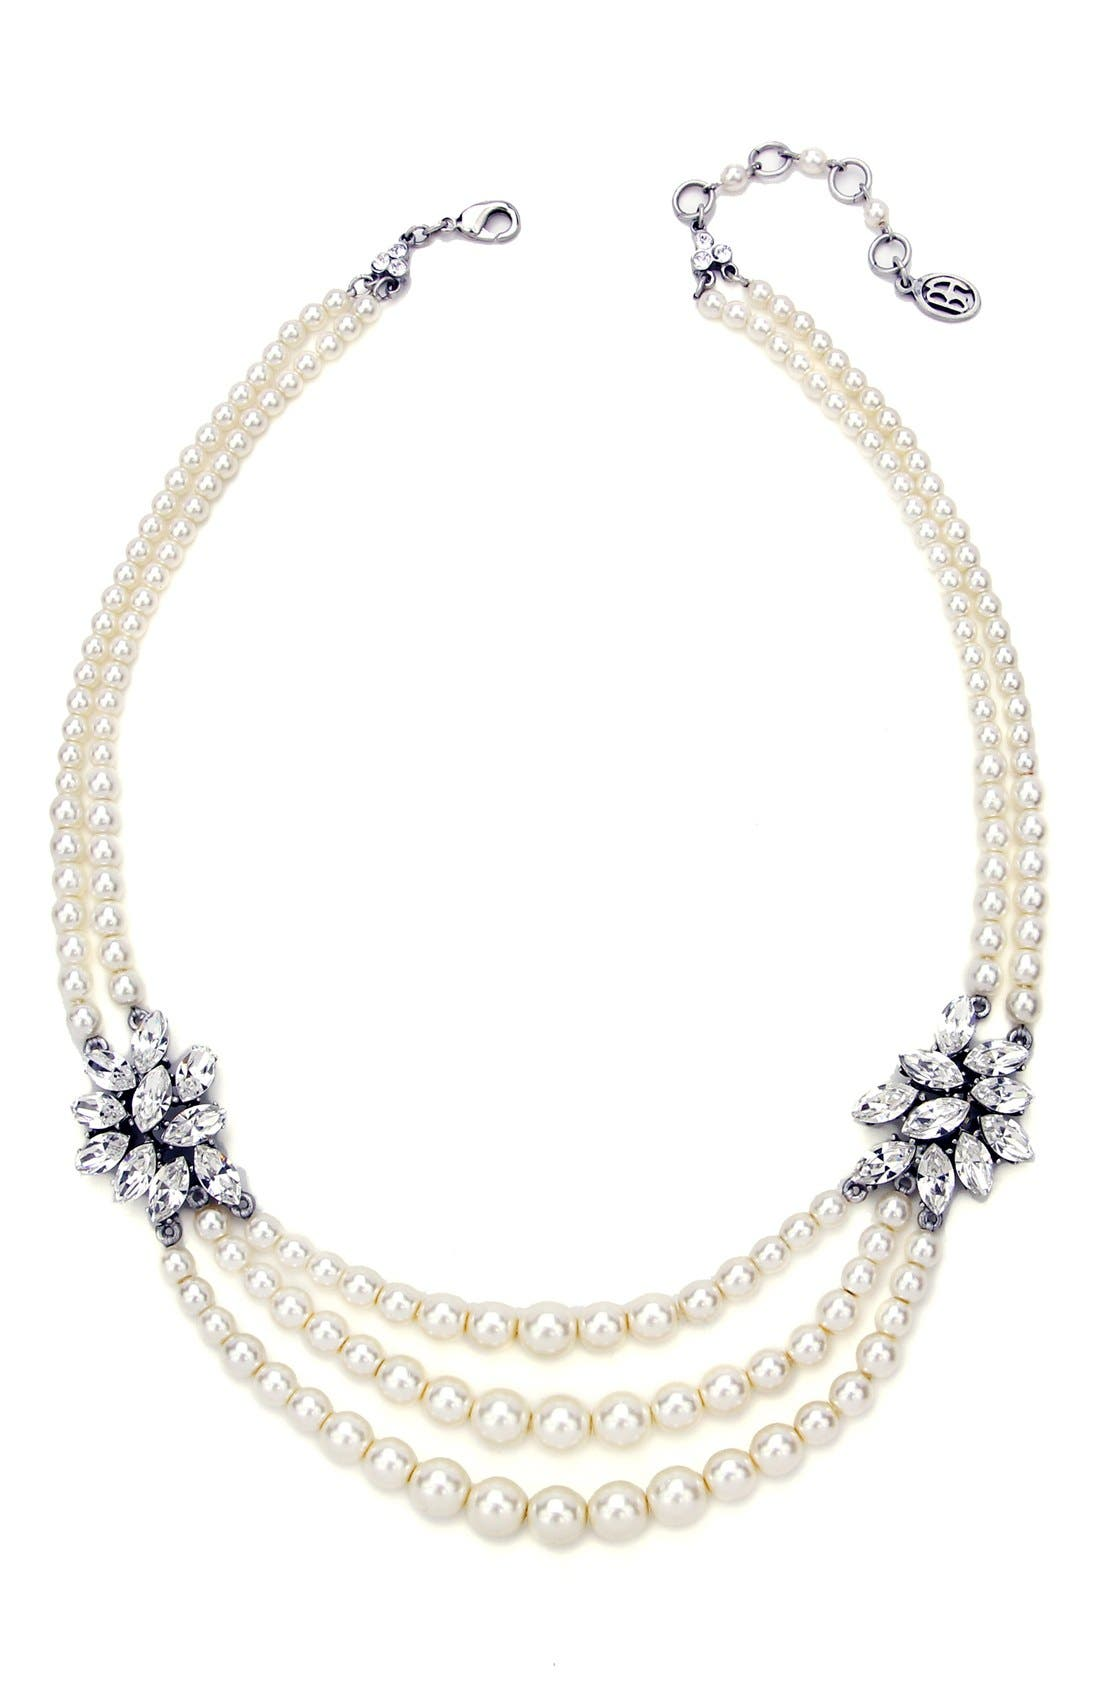 Faux Pearl & Crystal Multistrand Necklace,                         Main,                         color, IVORY/ CLEAR